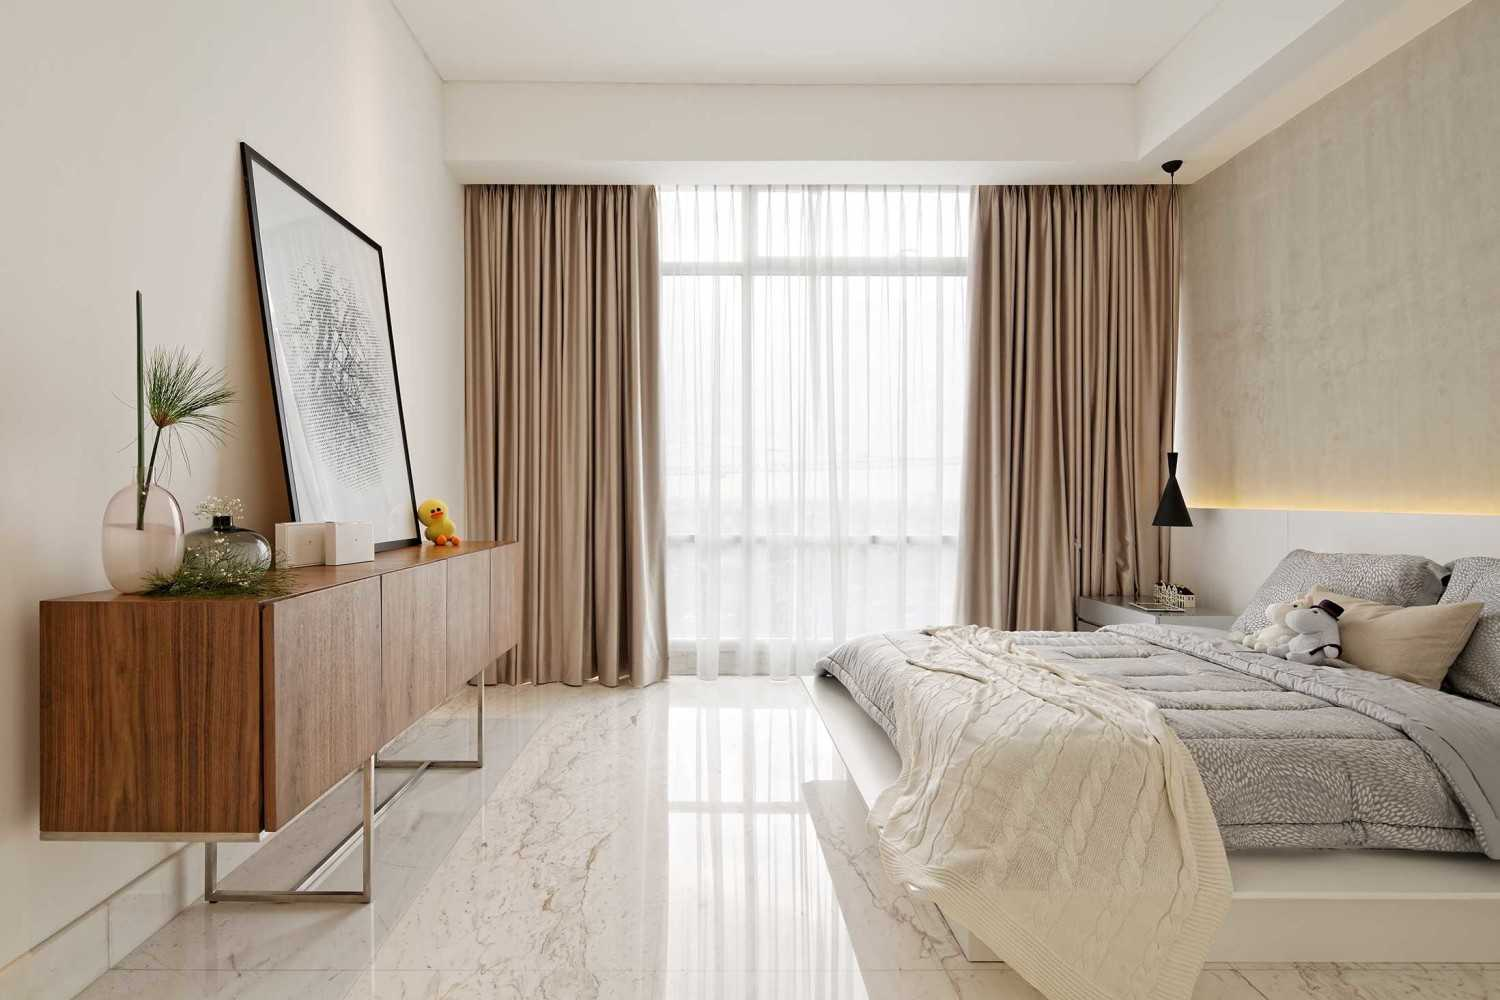 Sontani Partners 11A Residence South Jakarta, Indonesia South Jakarta, Indonesia Bedroom Kontemporer,industrial,wood,modern 21401